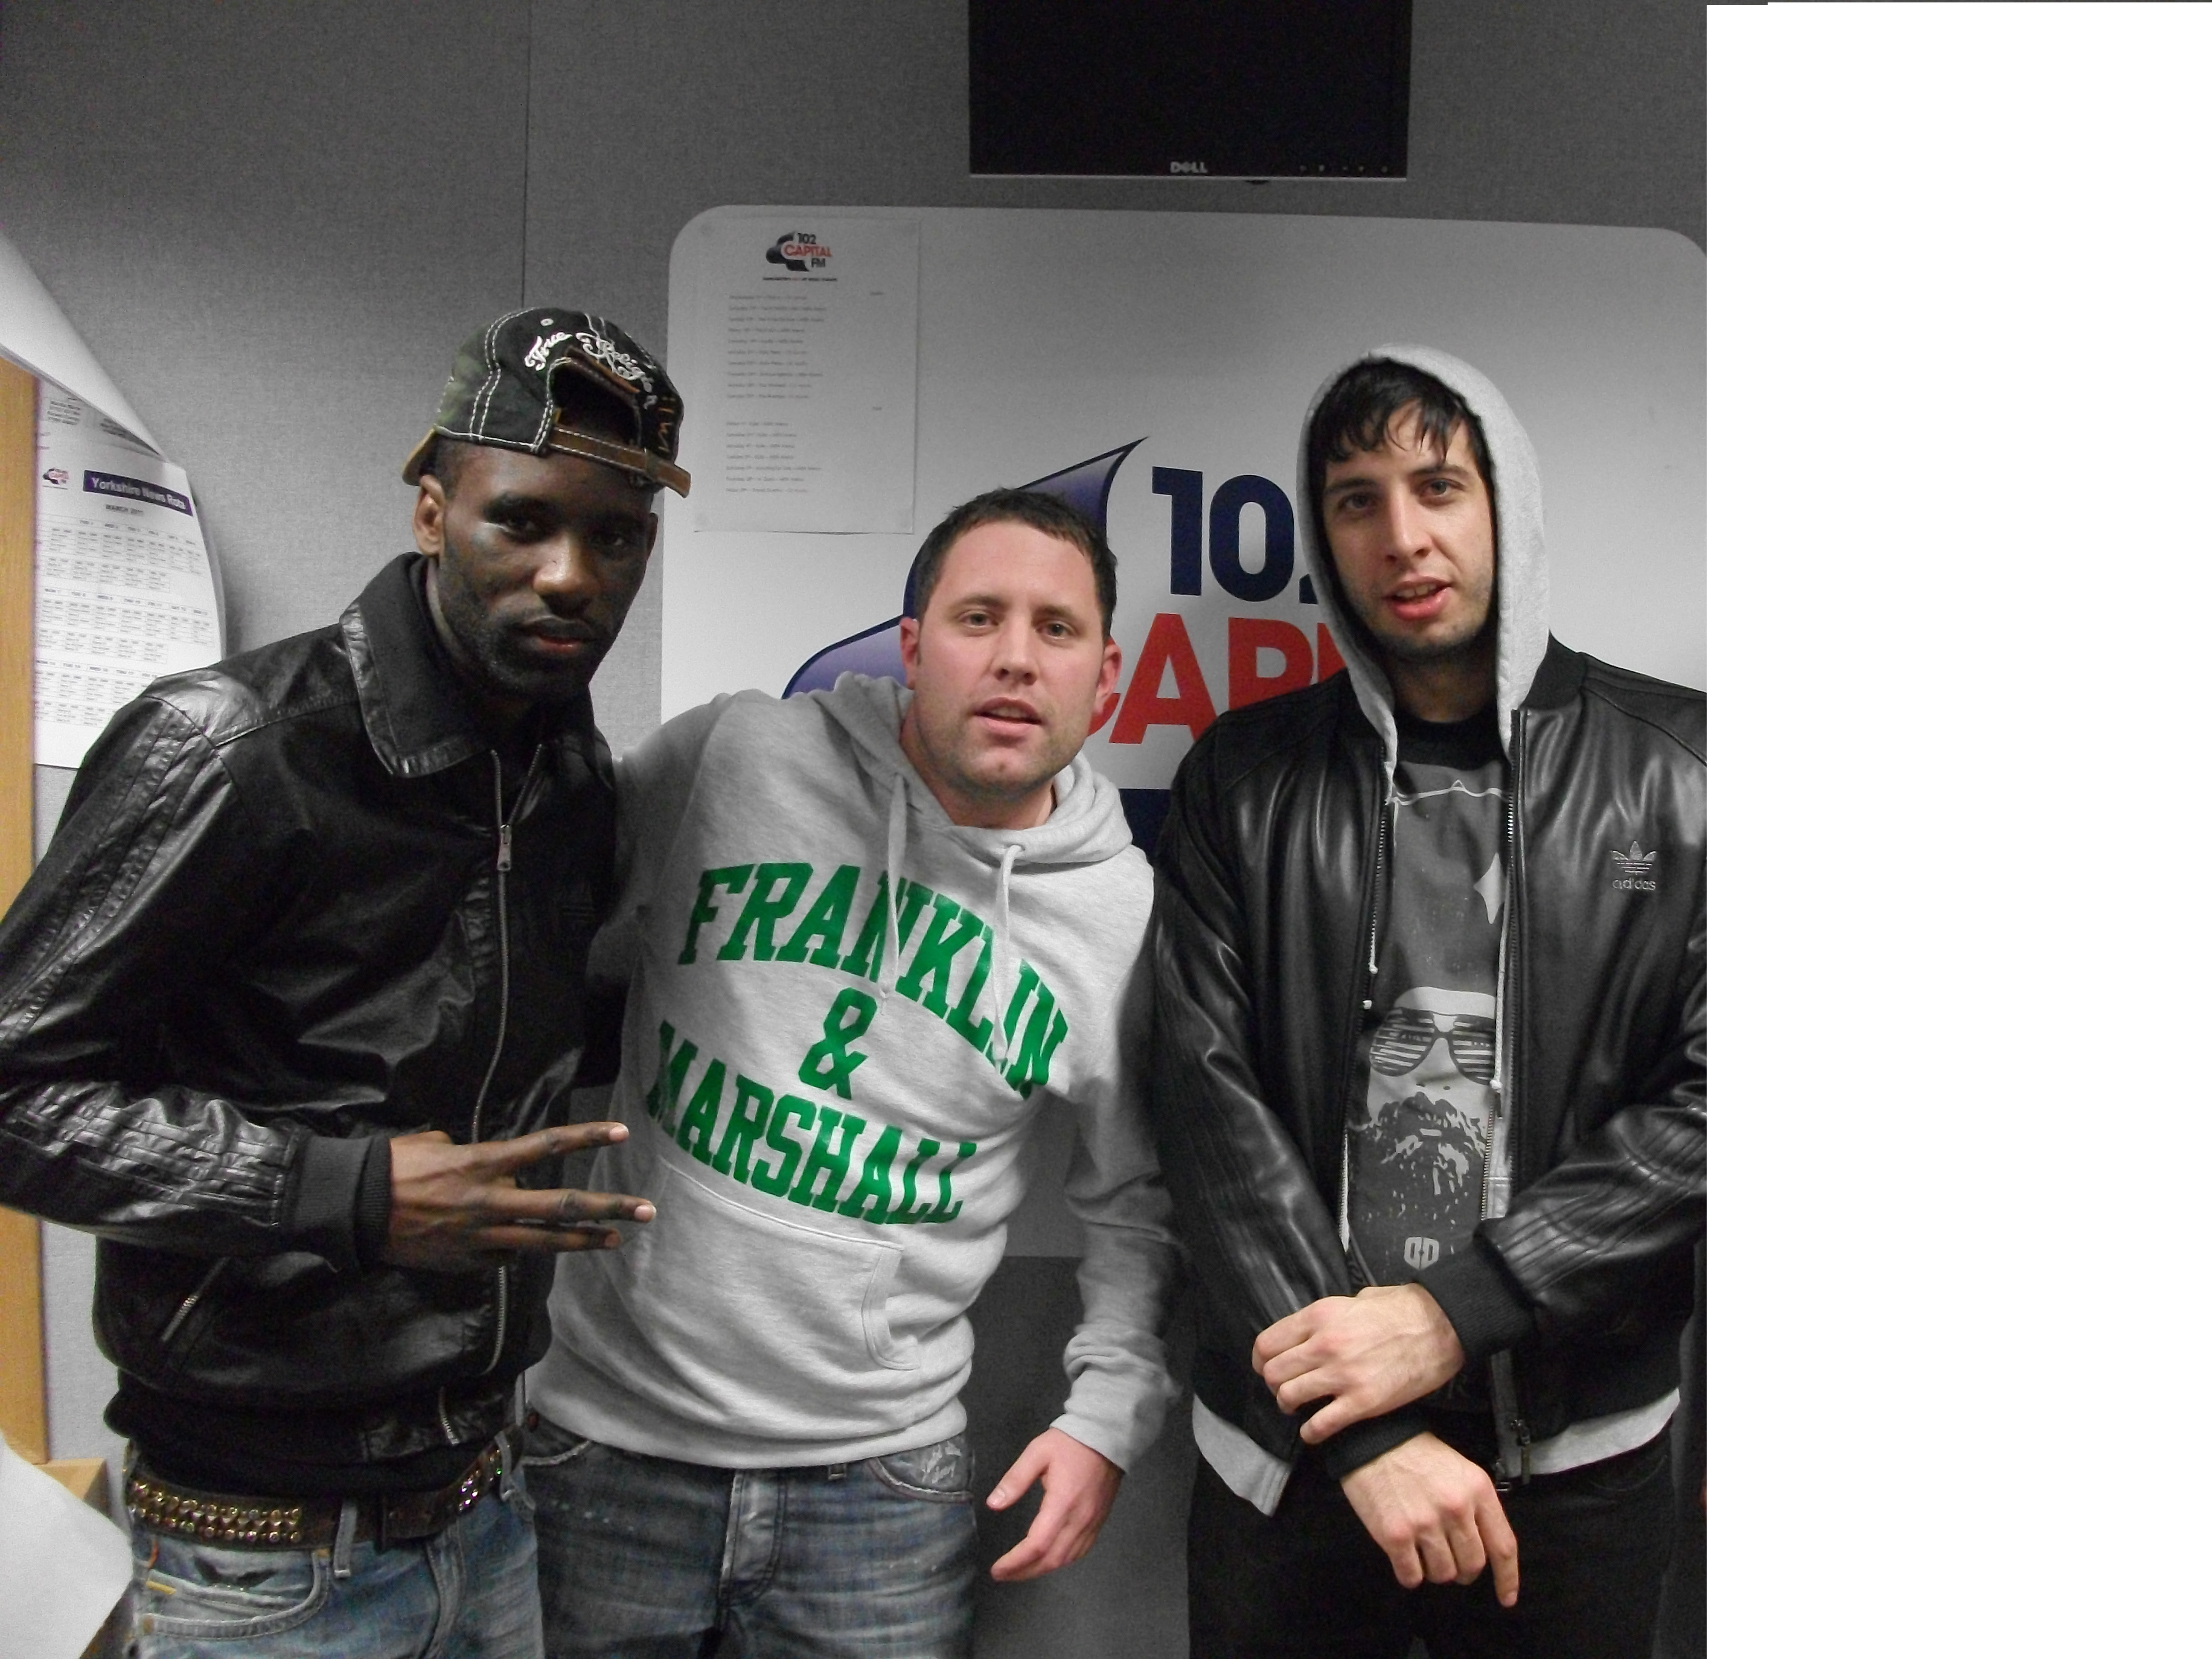 Wingman example wretch 32 balloon interview